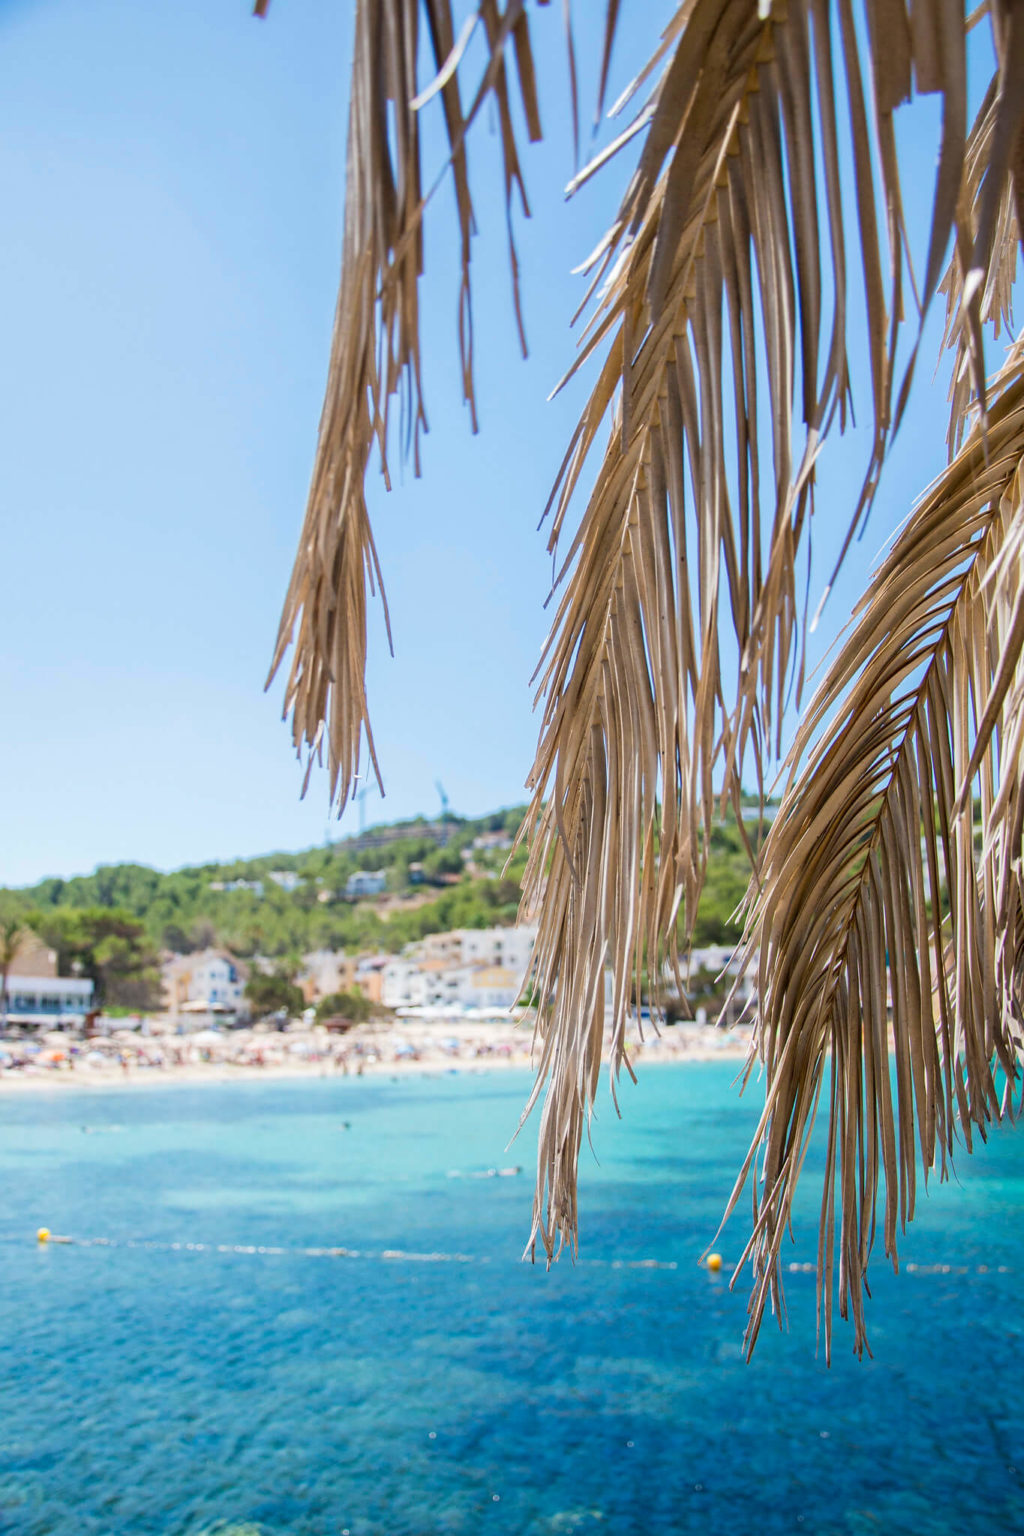 https://www.white-ibiza.com/wp-content/uploads/2020/03/ibiza-beaches-cala-vadella-06-1024x1536.jpg